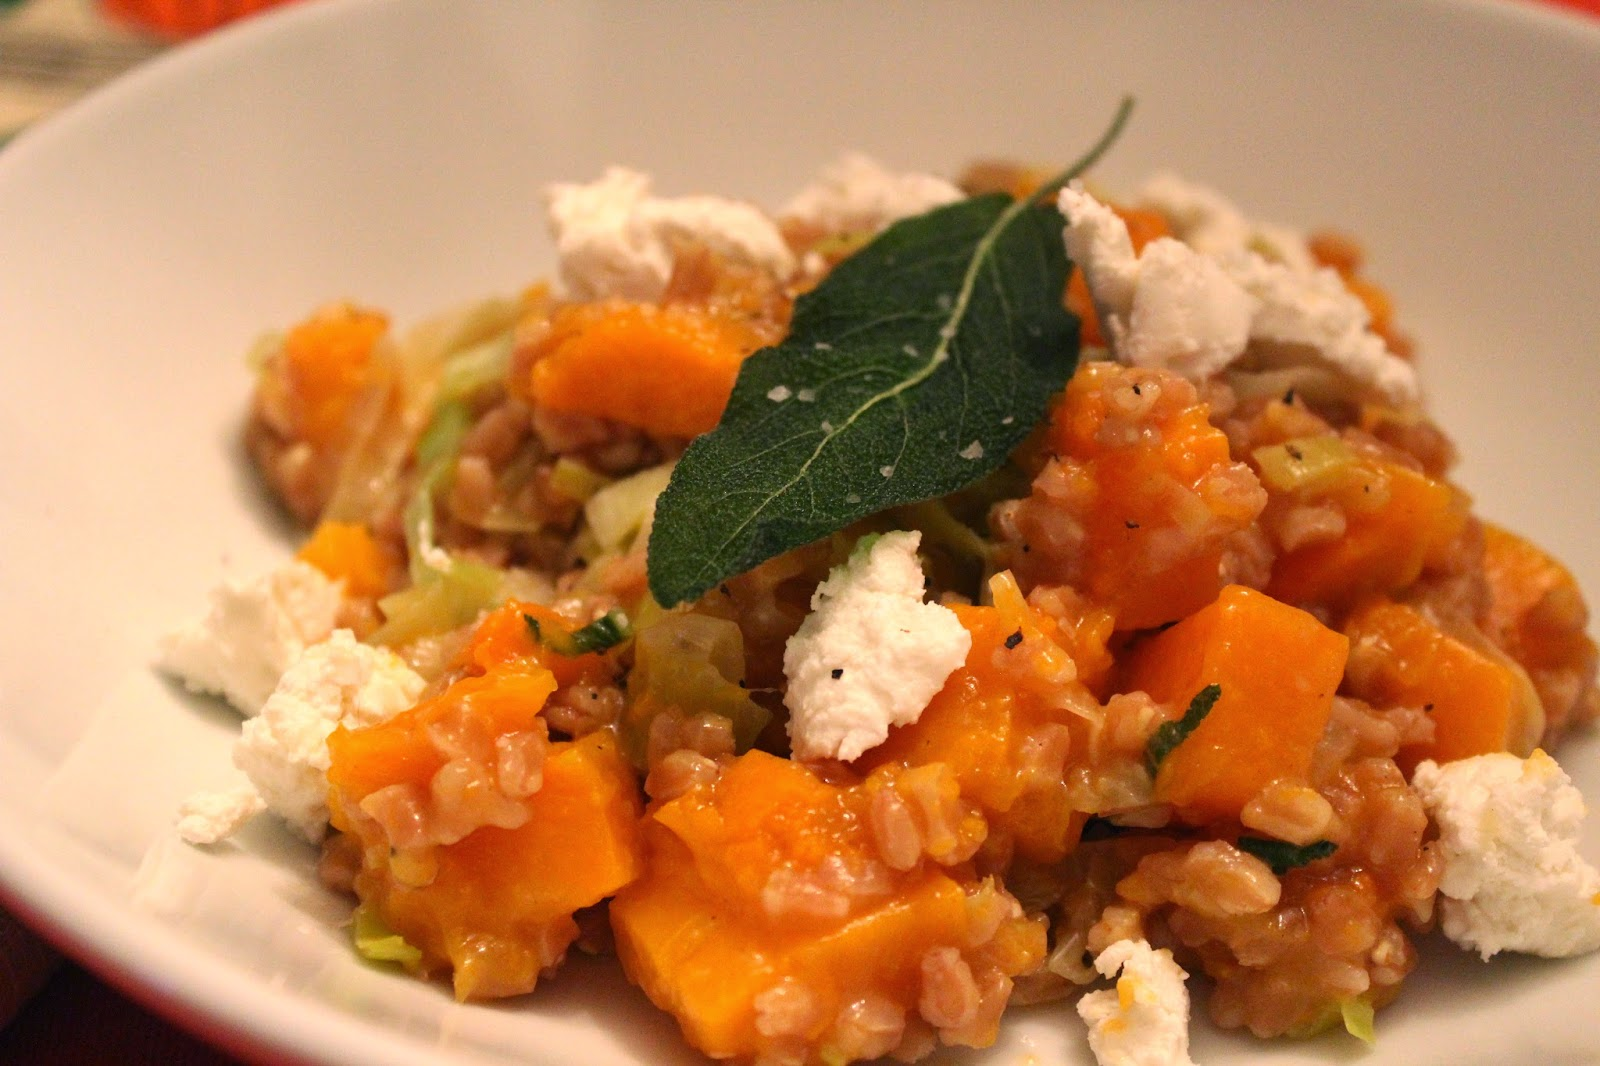 Farro risotto with butternut squash, sage, and goat cheese